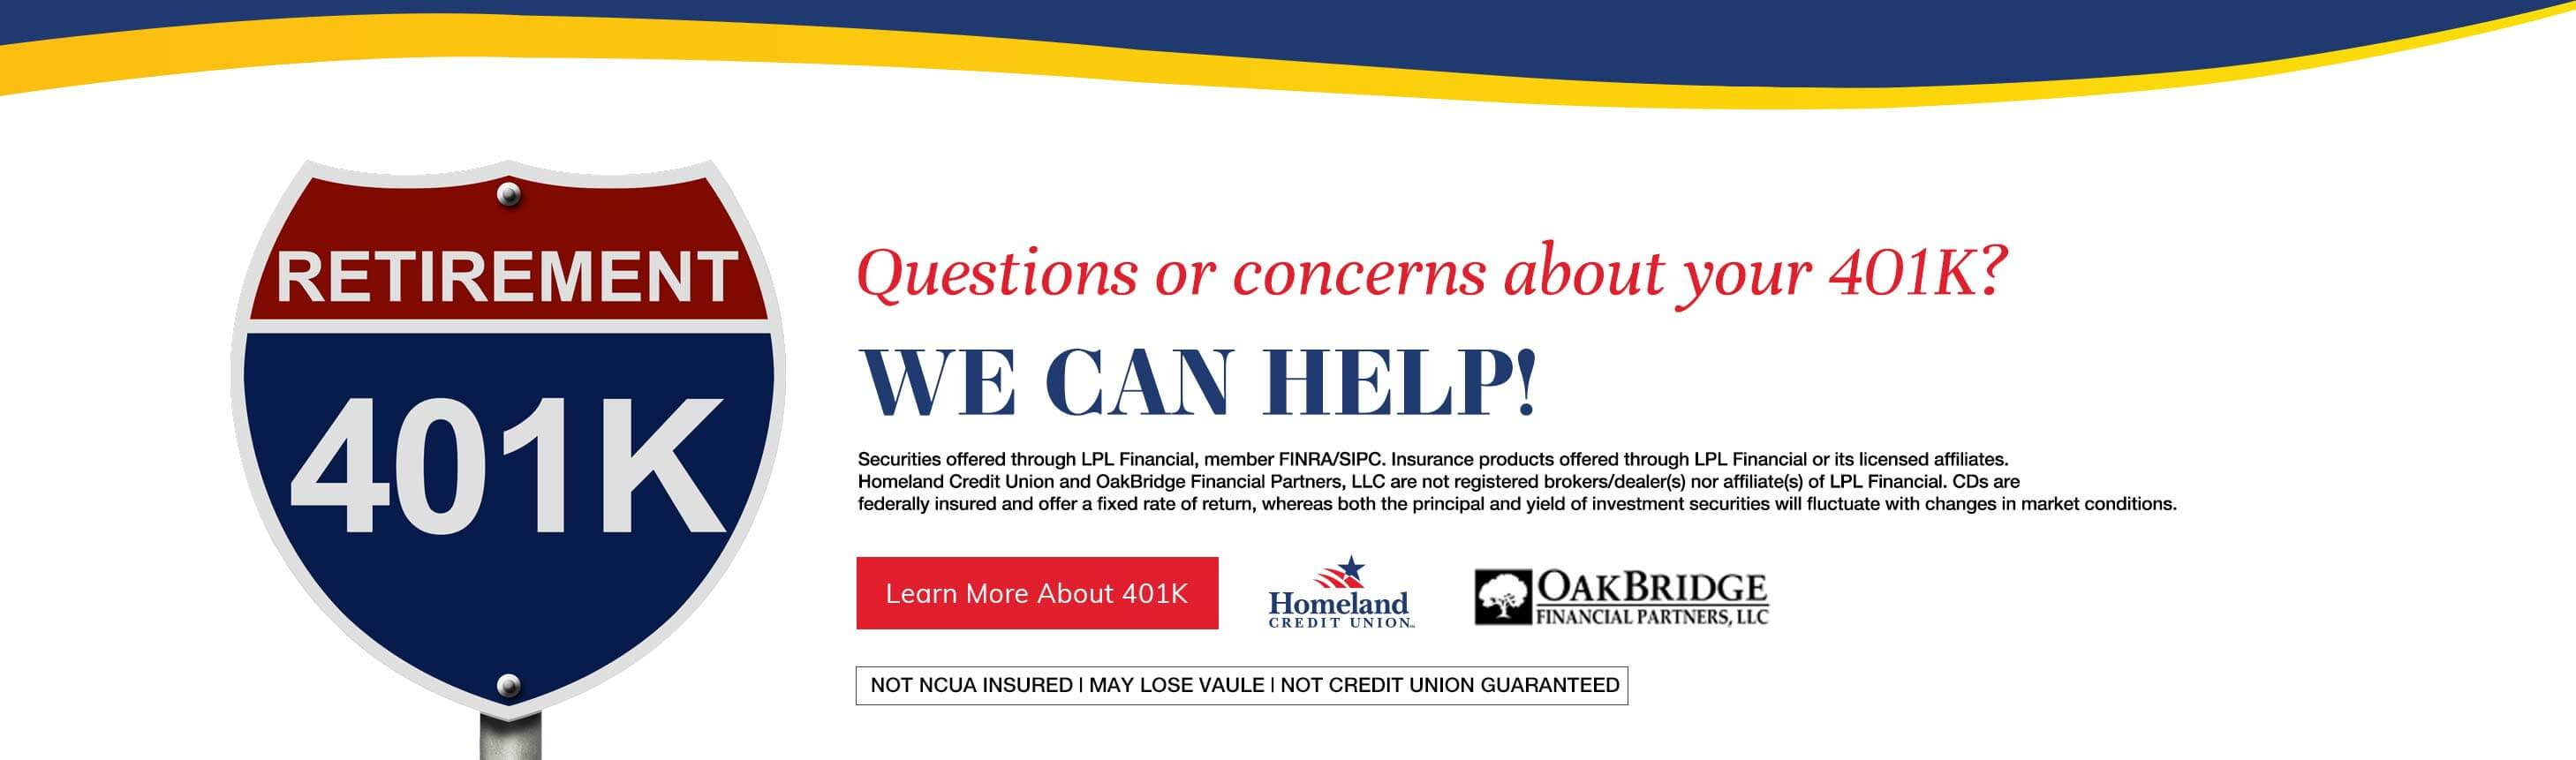 Questions or concerns about your 401K? we can help! Learn More About 401K